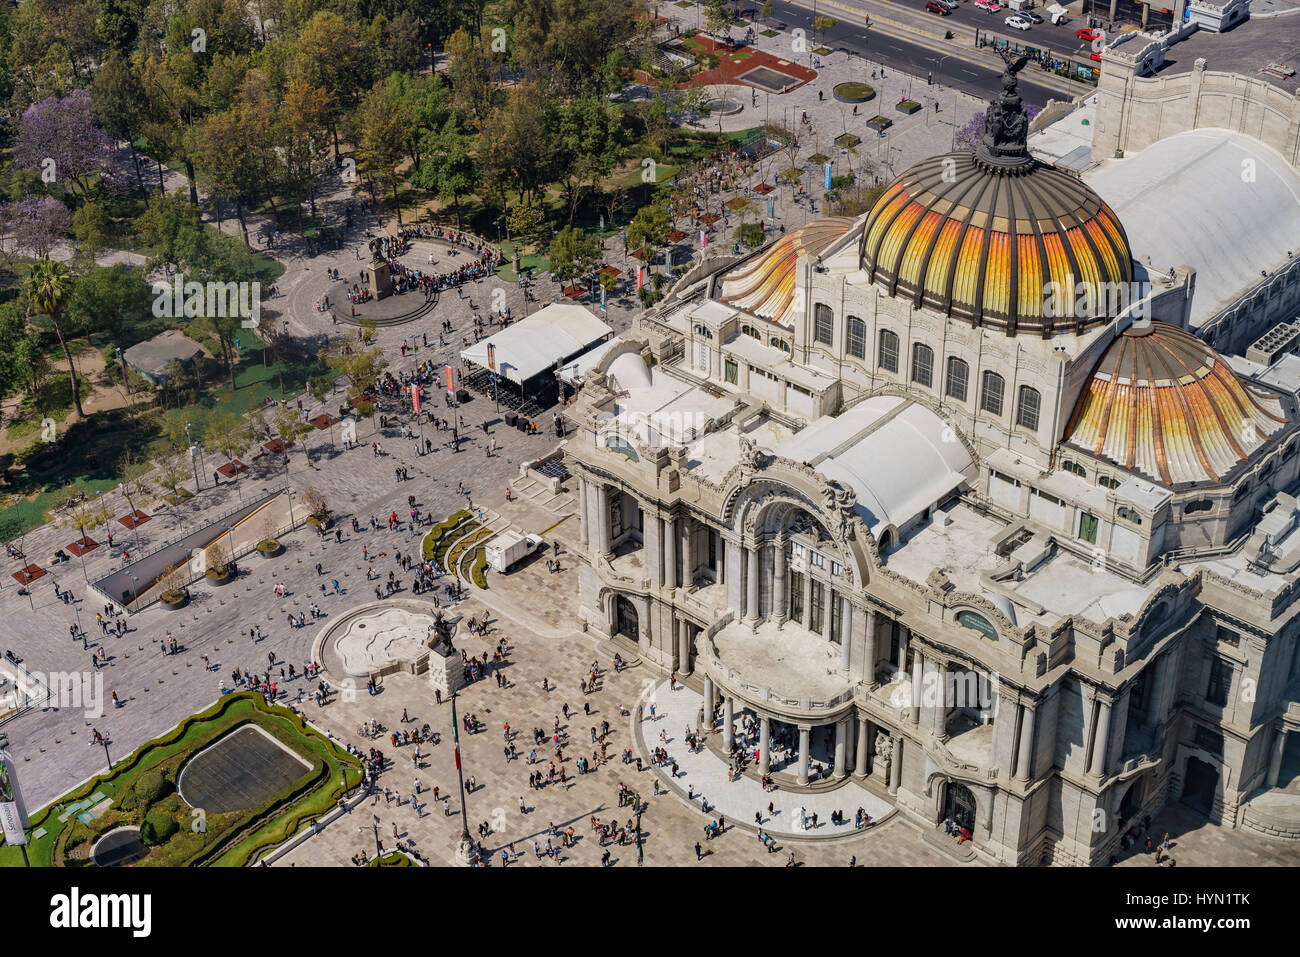 Aerial view of the Palace of Fine Arts with Central Alameda Park of Mexico City - Stock Image